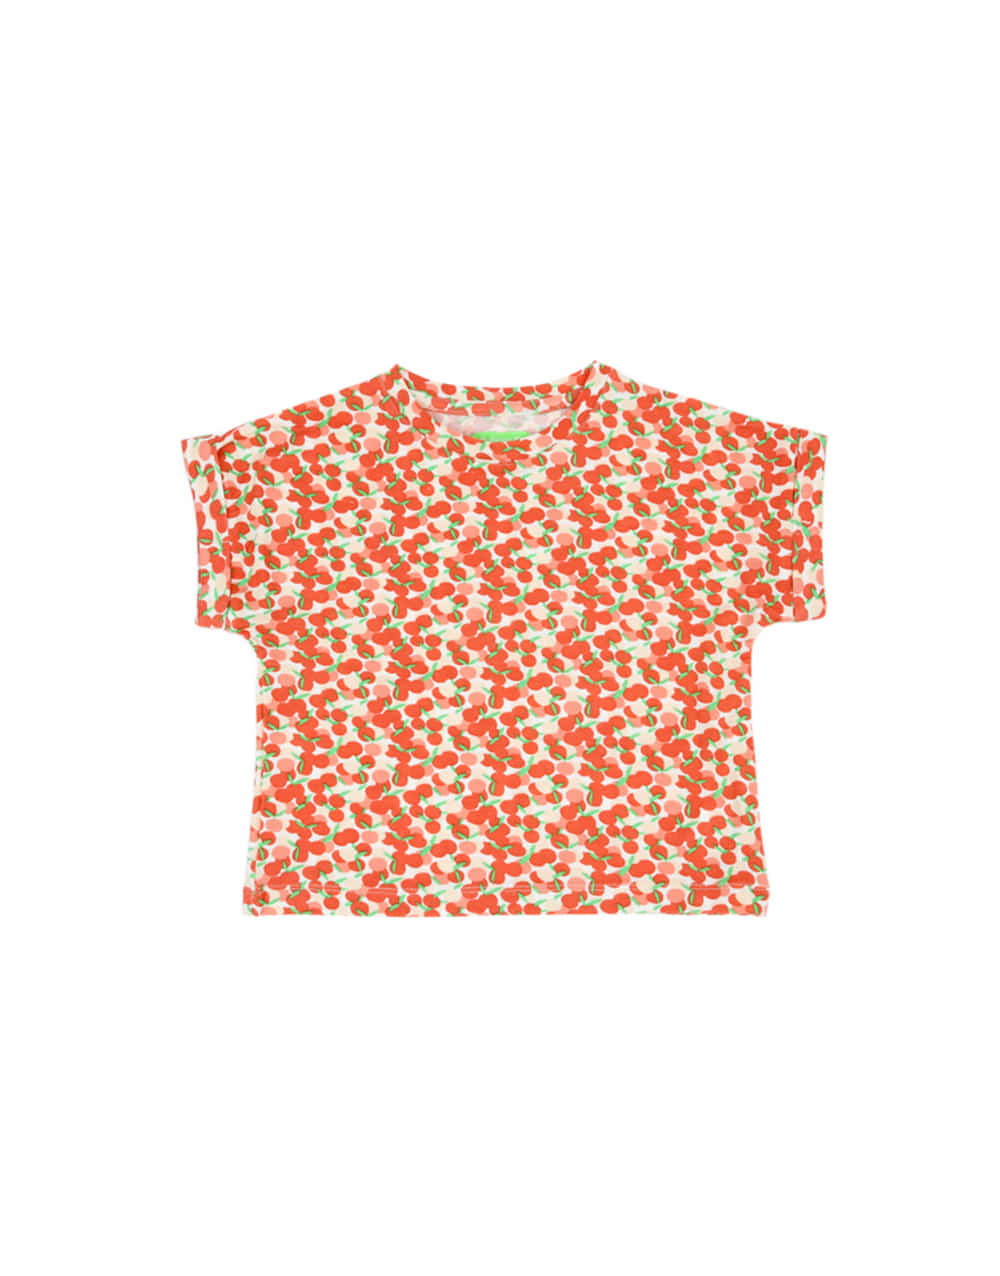 LILY BALOU   Fenna T-shirt   Summer Berries